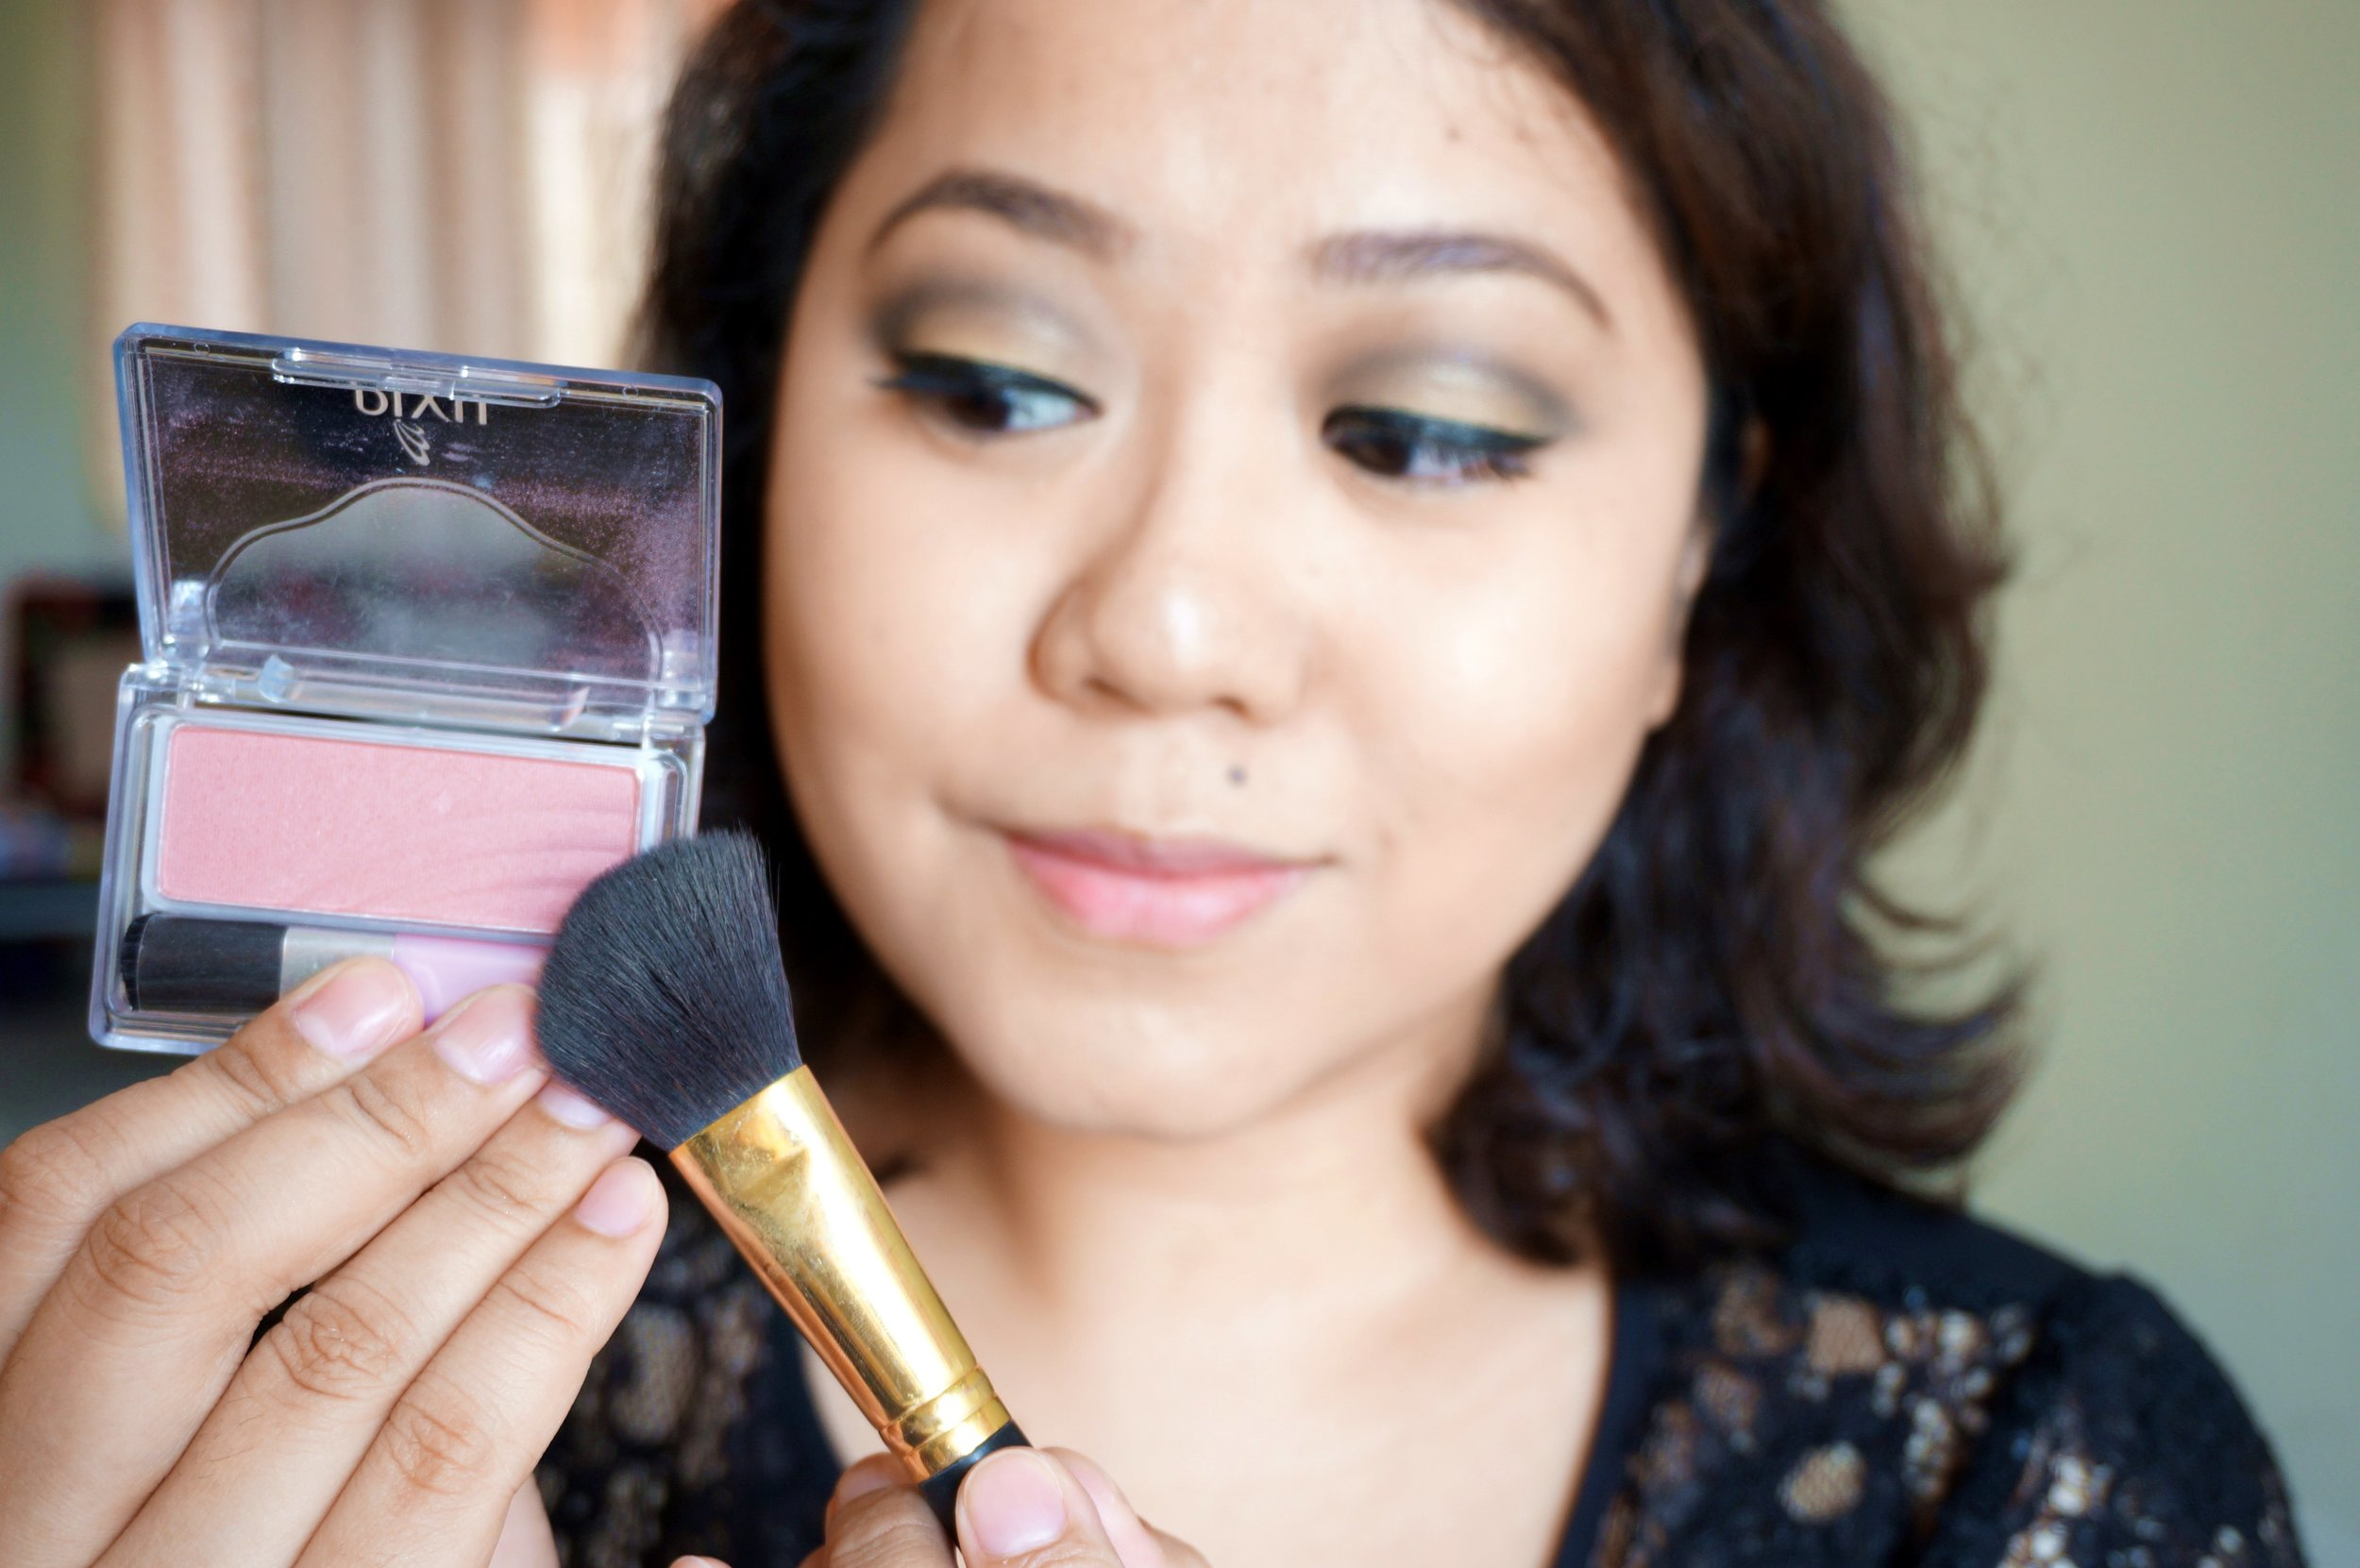 Step 12: Layer on the Pixy Passion Roses Brush (P285) on the apples of your cheeks. This gives a natural flush with just ahint of shimmer. It's very pretty and understated!